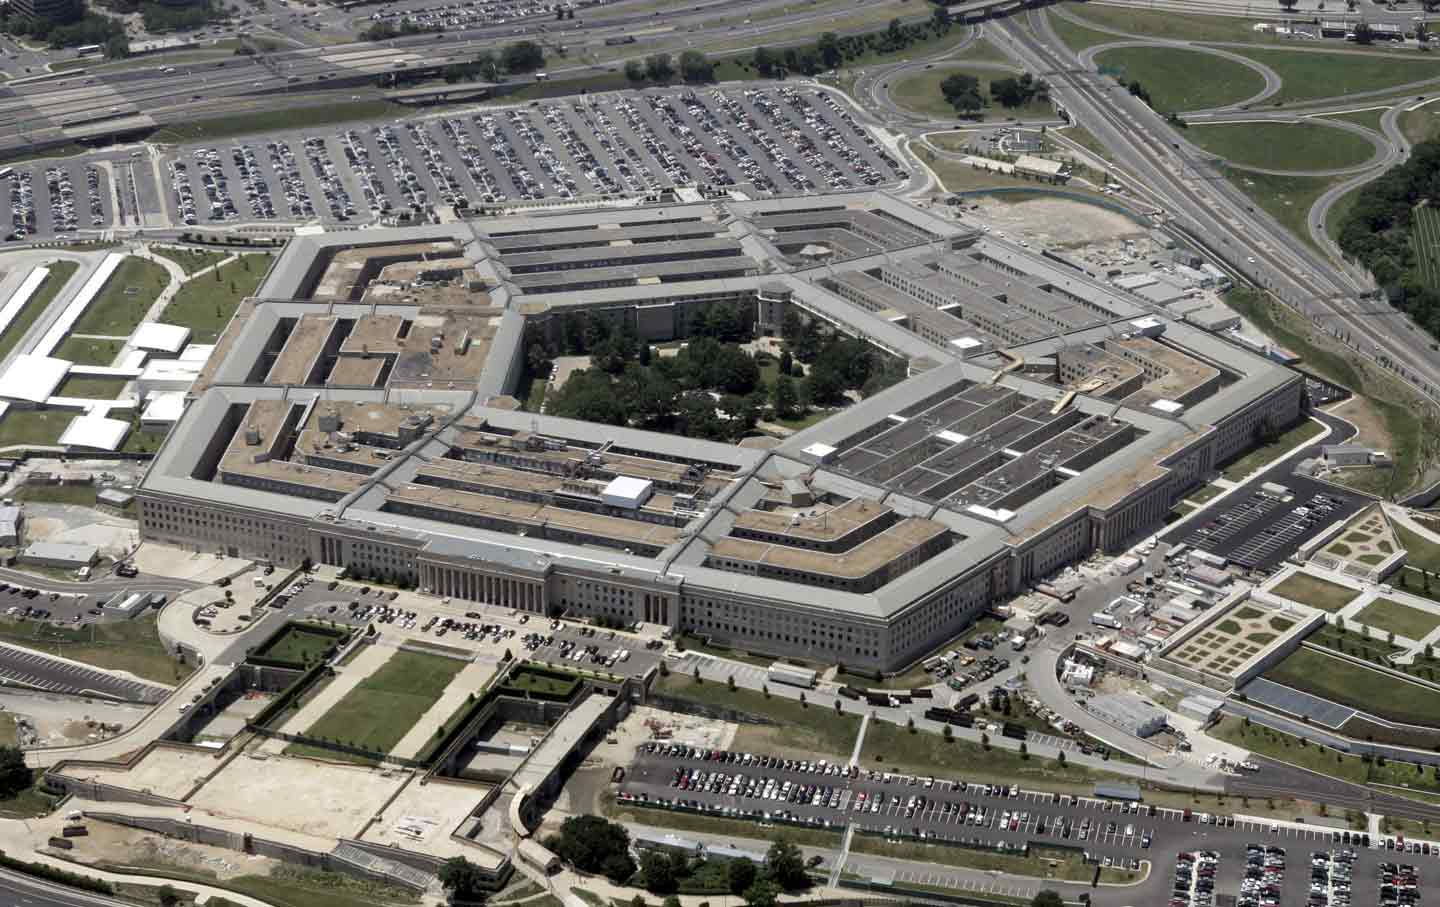 The Pentagon in Washington